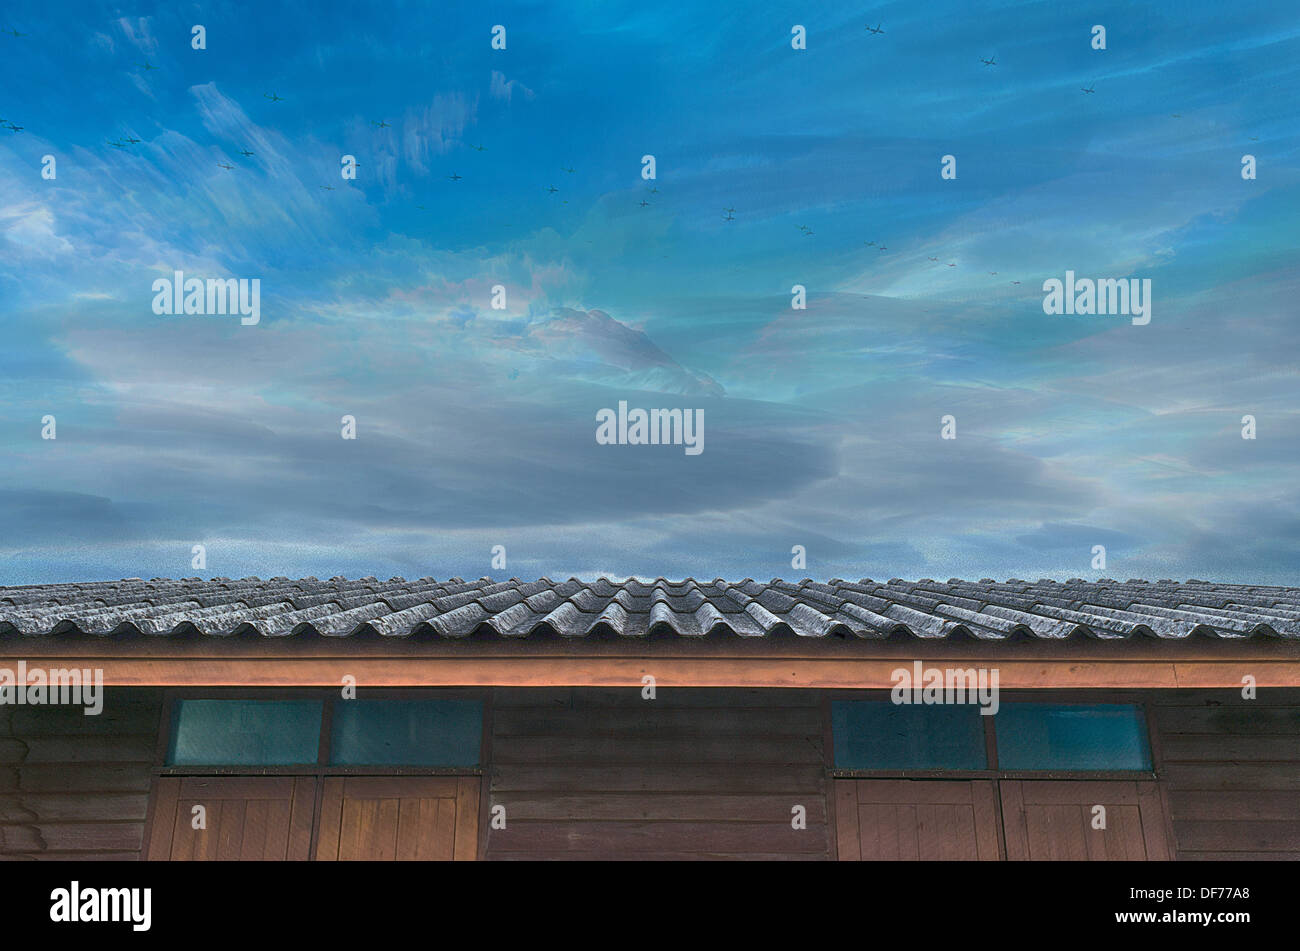 The Moving Planes, Cloudy Blue Sky and Roof of Wooden House. - Stock Image